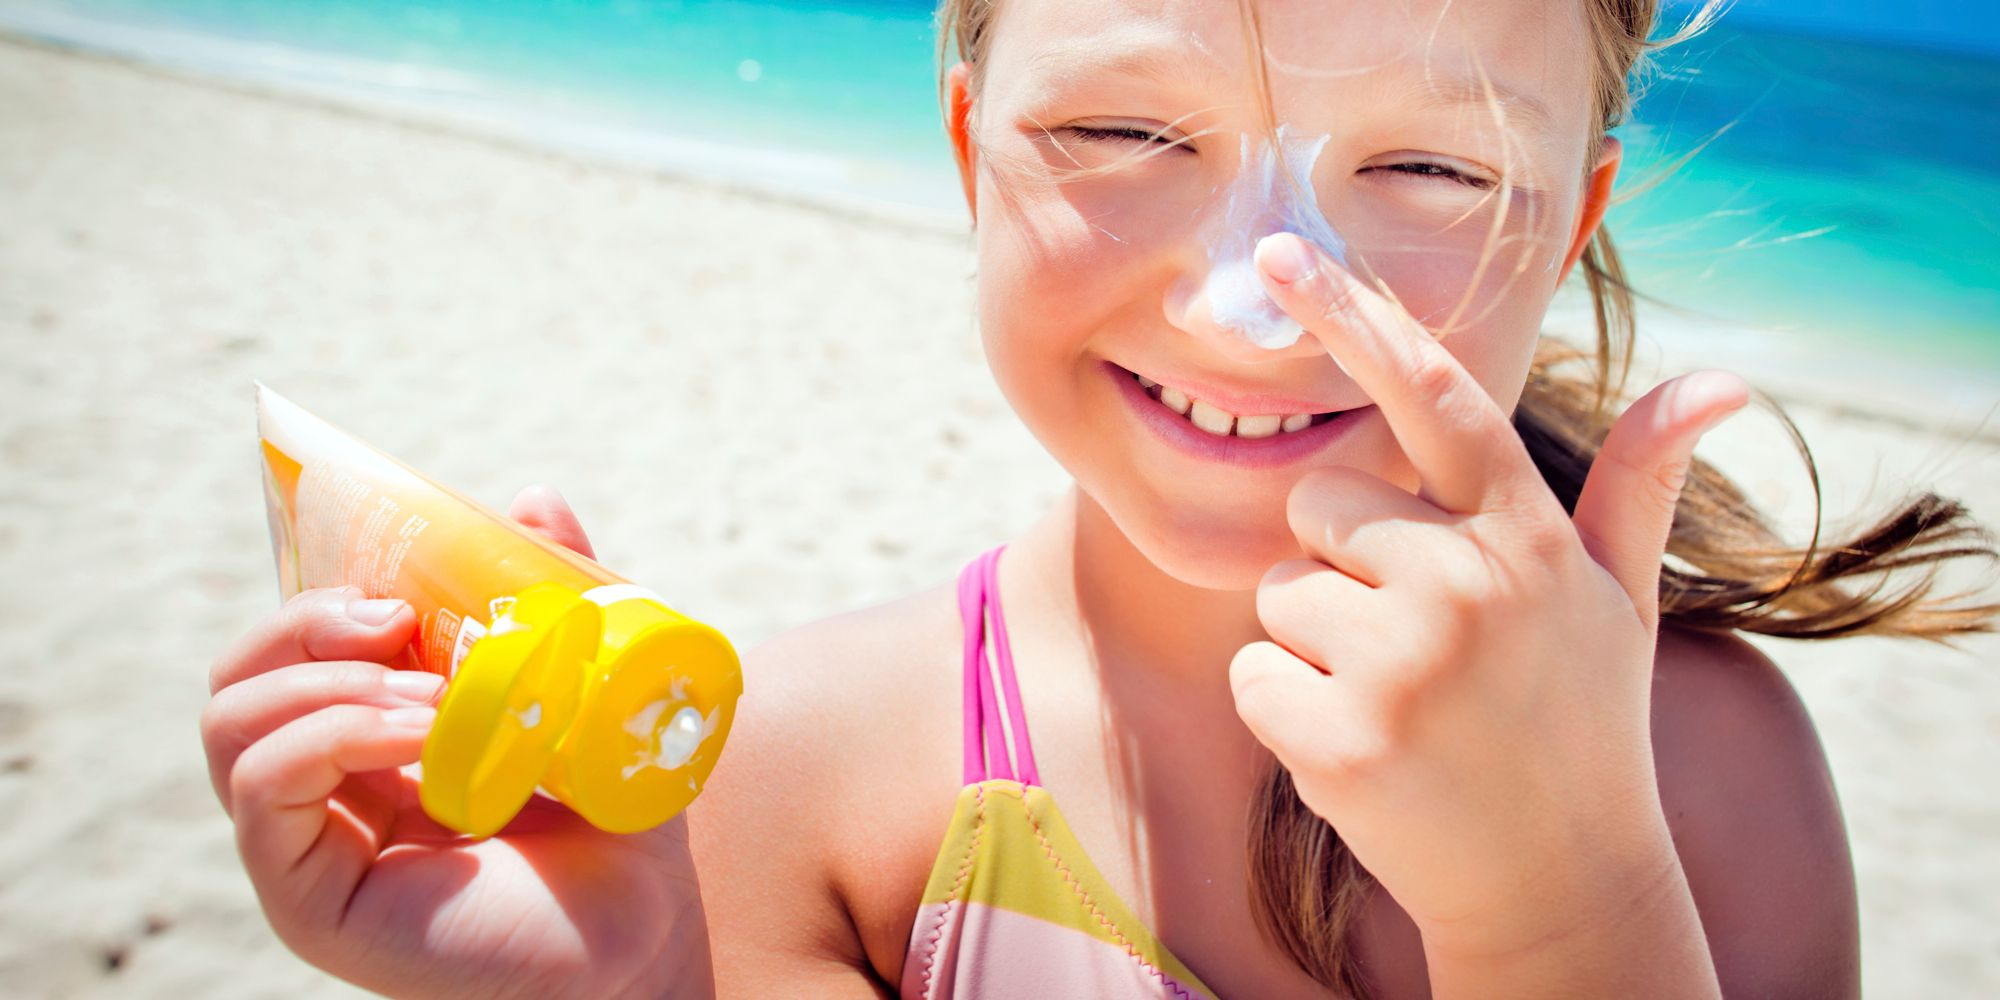 A girl applies sunscreen from a polyethylene tube.